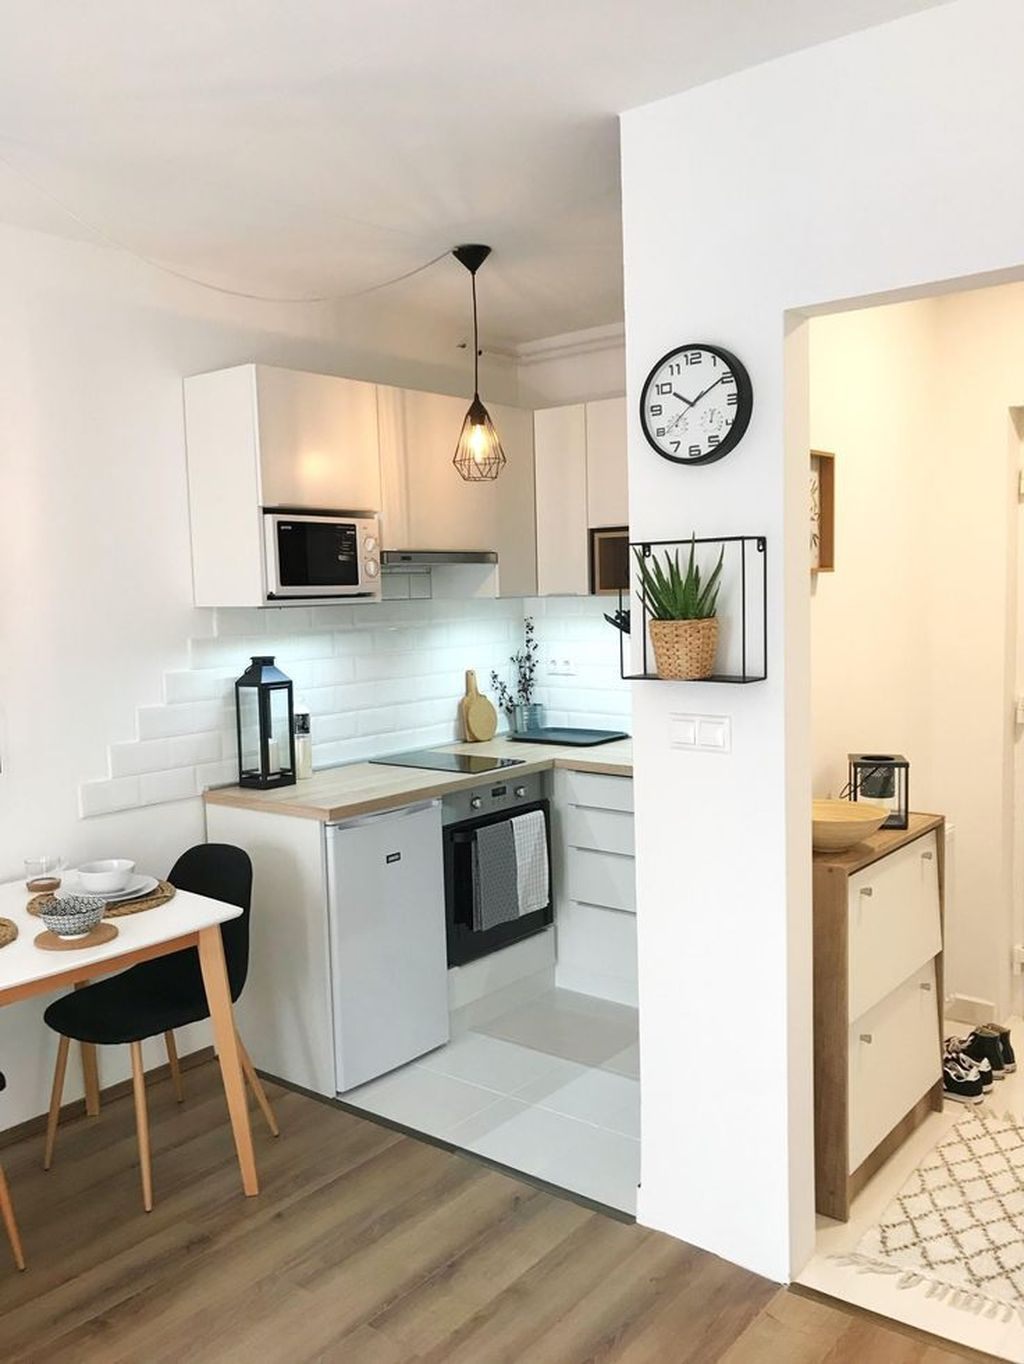 35 Brilliant Small Apartment Kitchen Ideas #apartmentkitchen